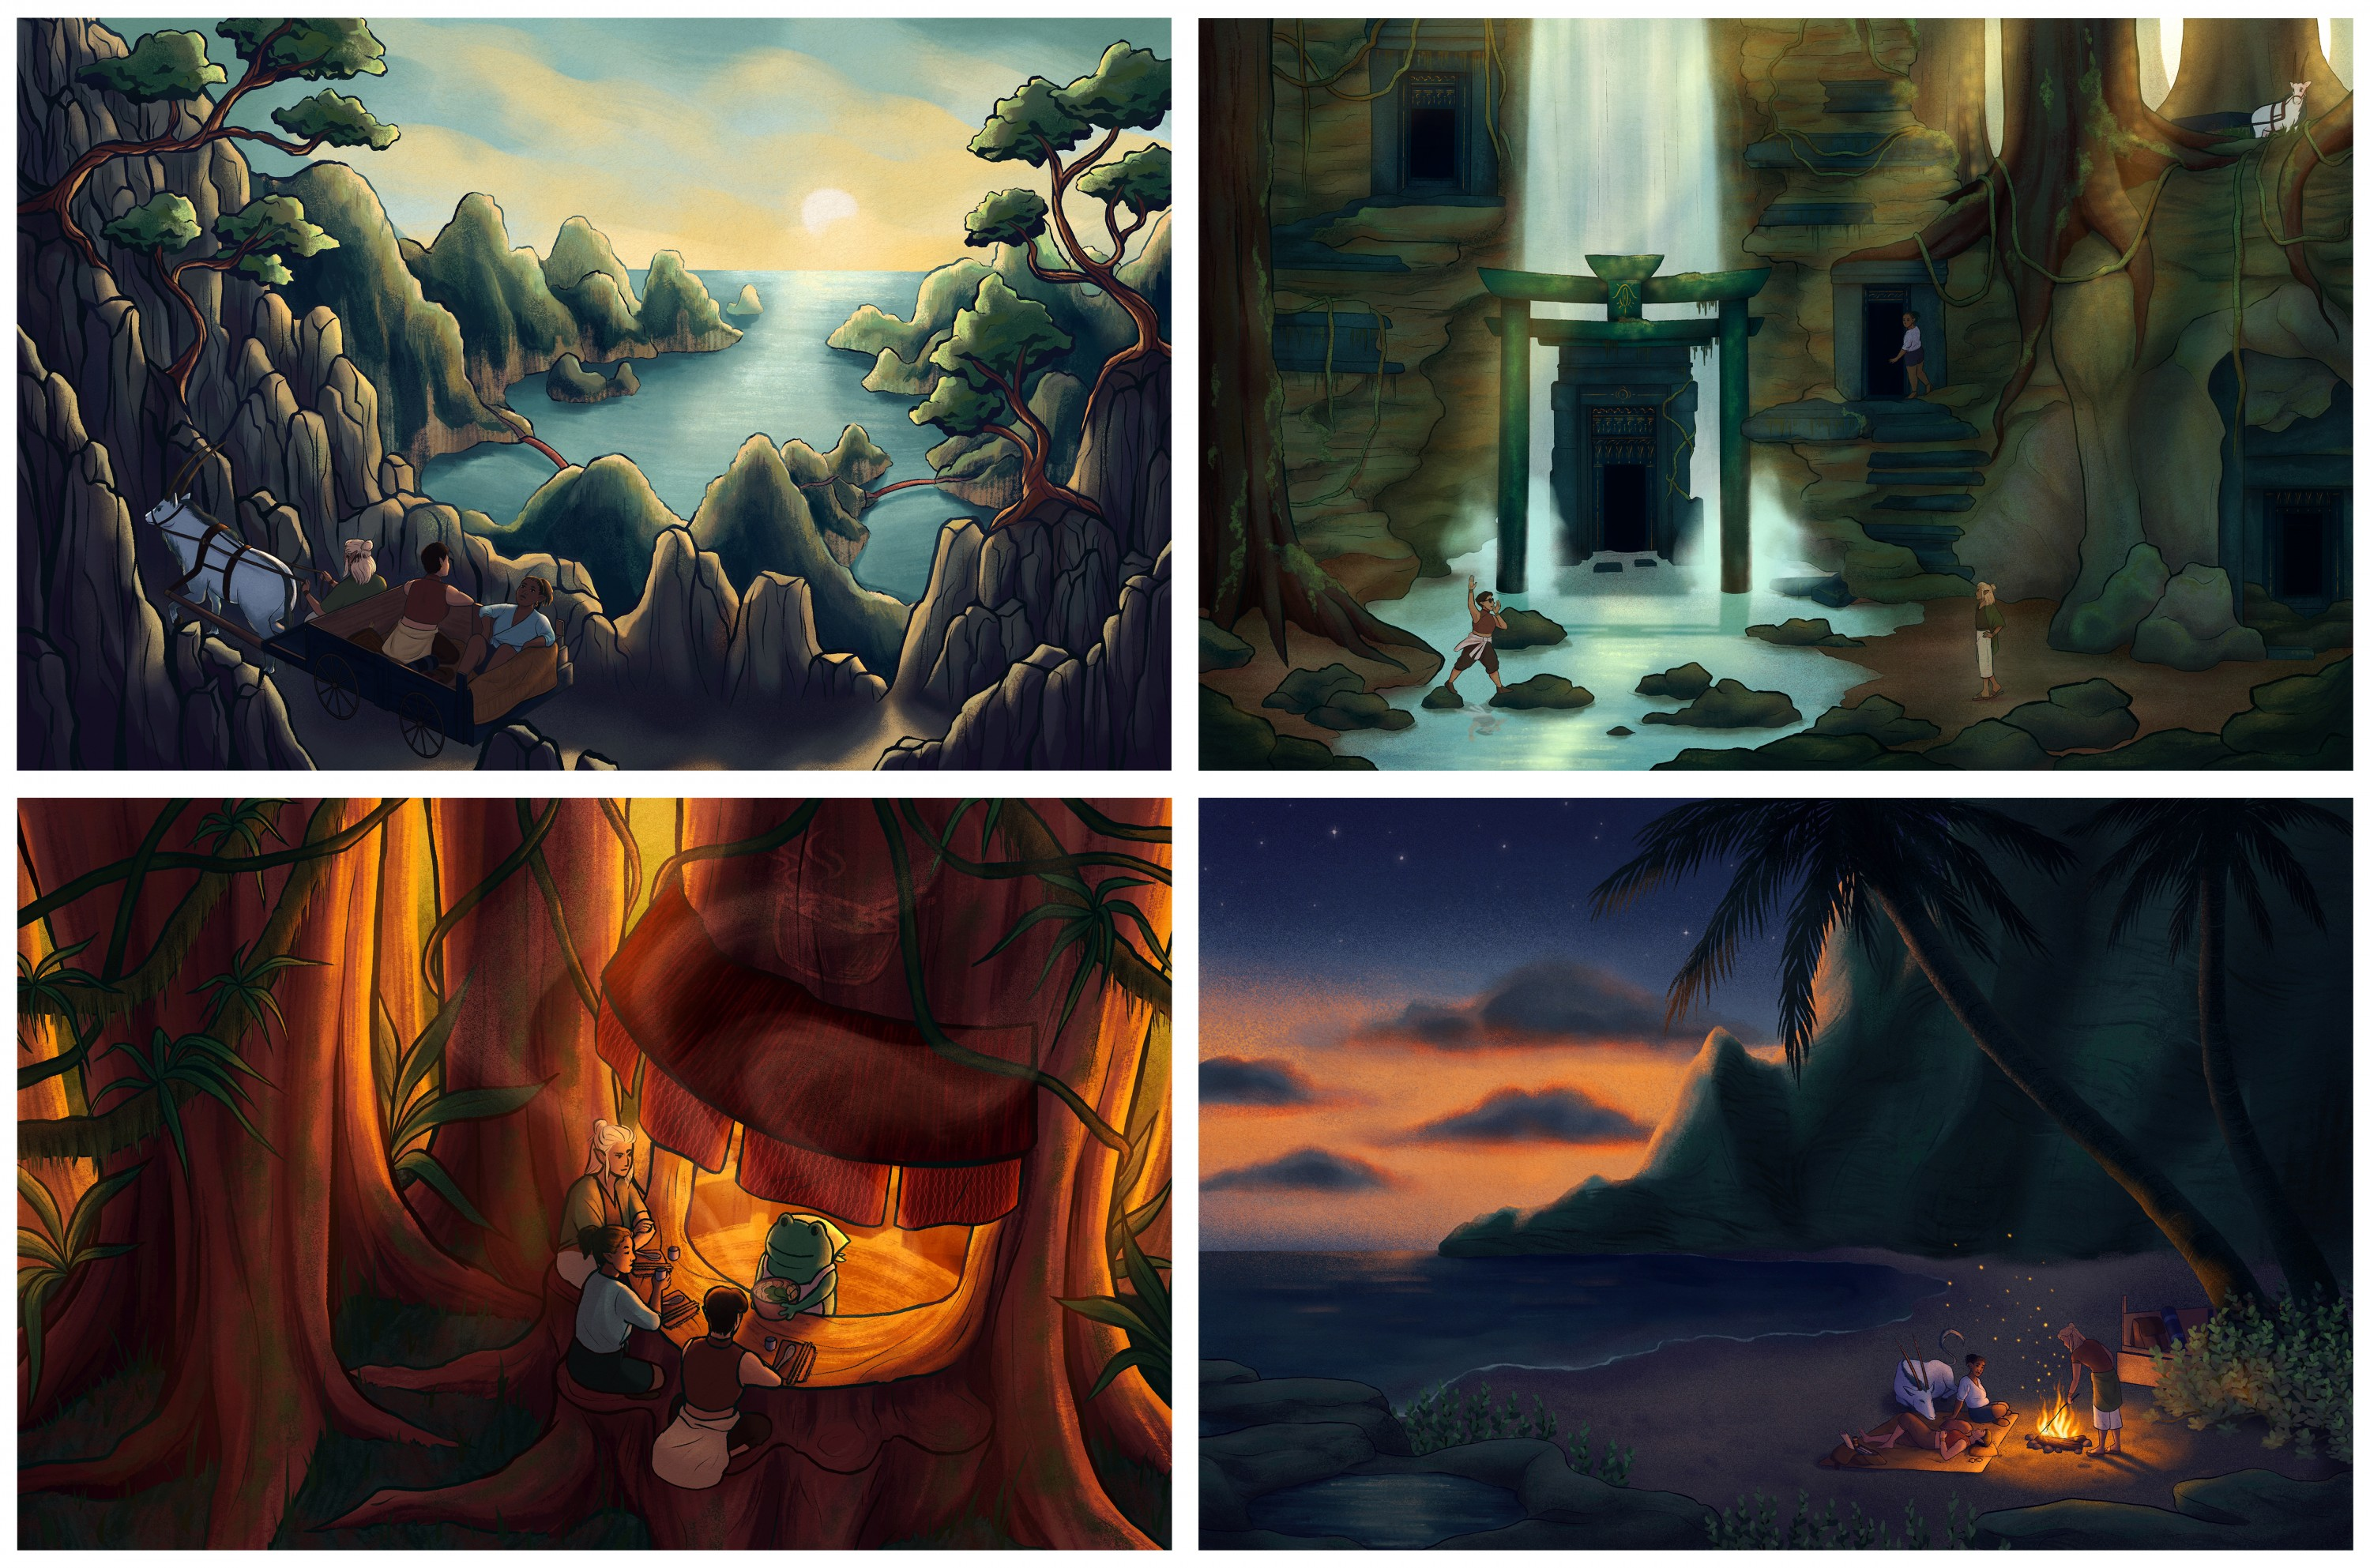 A series of four digital art pieces that depict three characters in various landscapes. The first character, Ko, has short dark hair and is wearing a sleeveless red crop top and loose black pants. The second character, Jerred, has darker skin with half ti